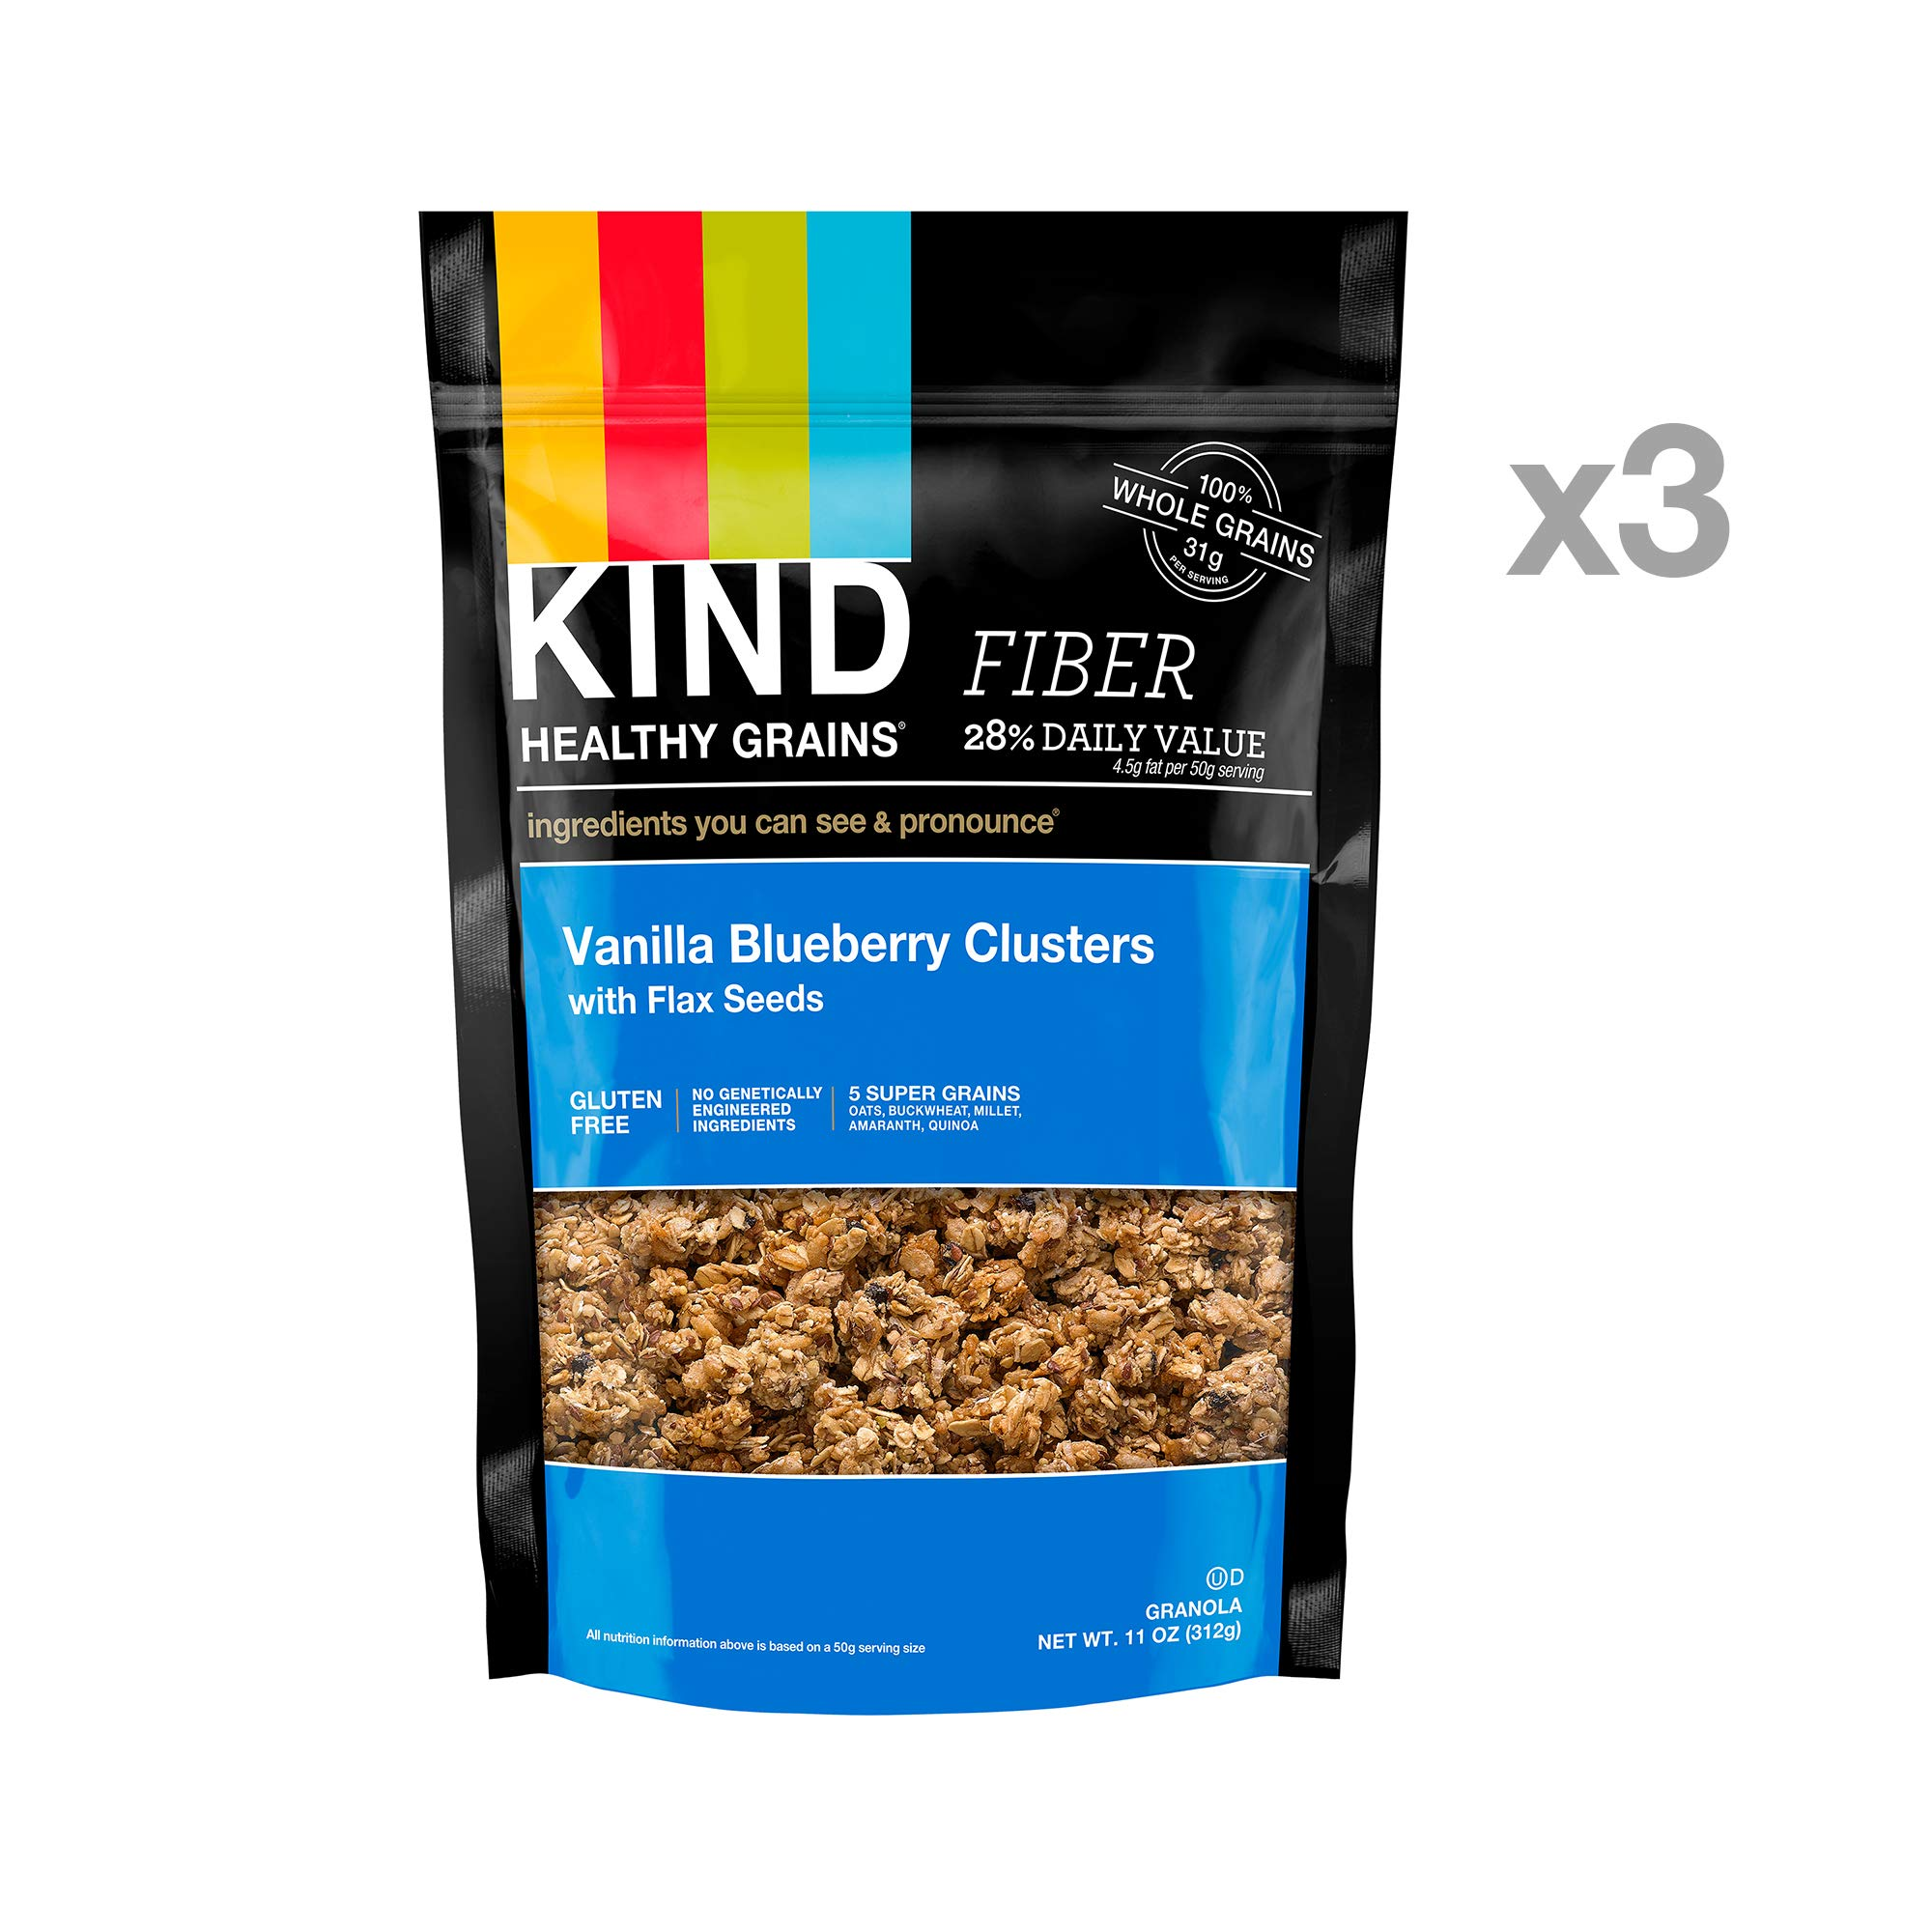 KIND Healthy Grains Granola Clusters, Vanilla Blueberry with Flax Seeds, Gluten Free, 11 Ounce Bags, 3 Count by KIND (Image #2)